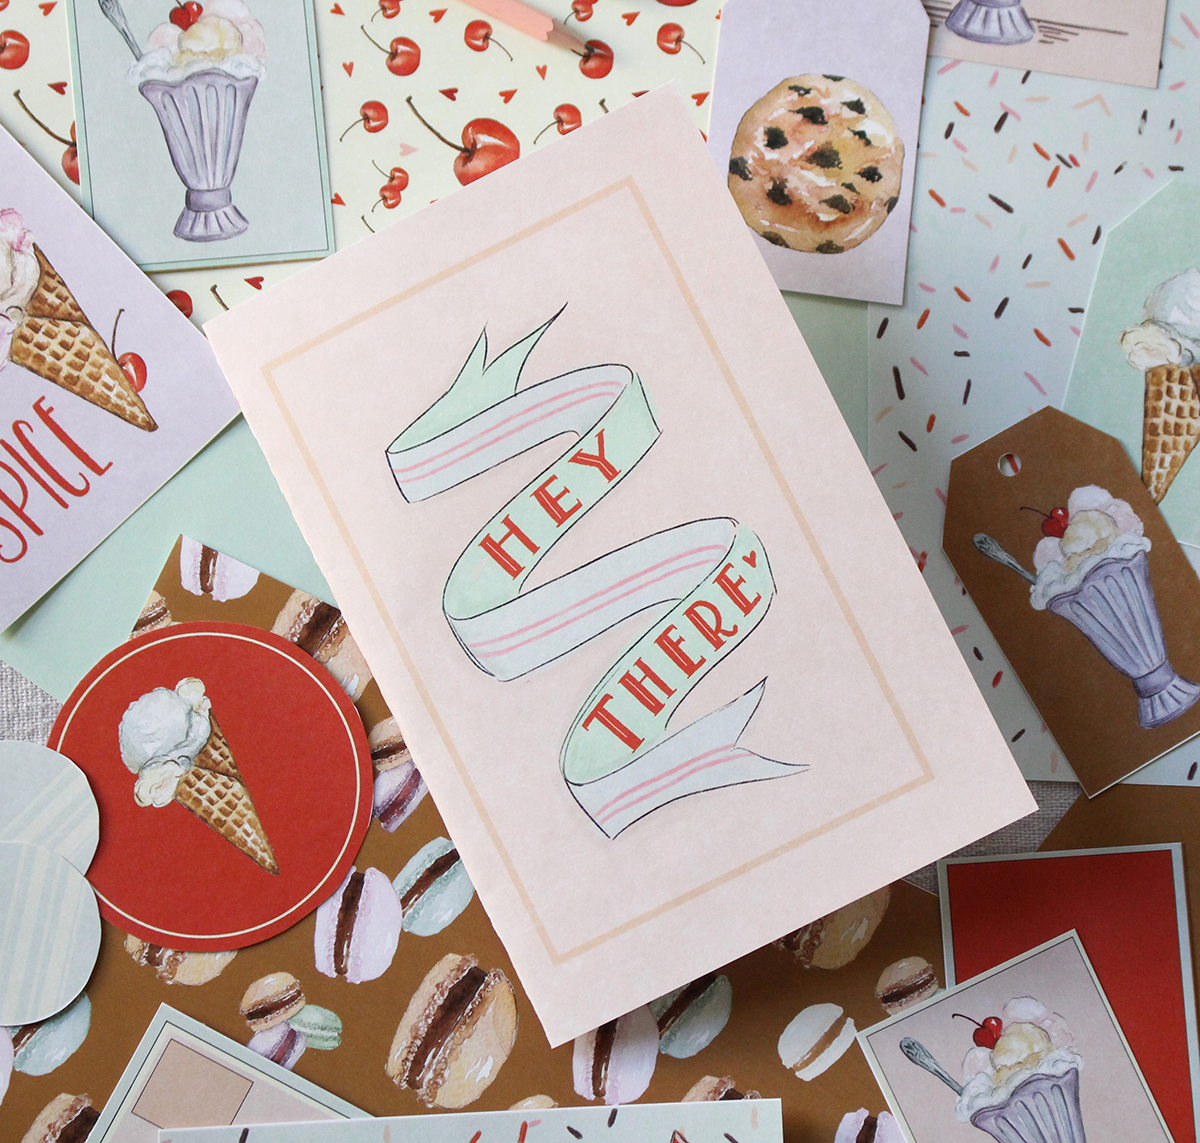 Life of The Party Paper Crafting by Lily & Val is filled with ready-to-use cards, tags, coasters, menus and more for throwing lovely parties